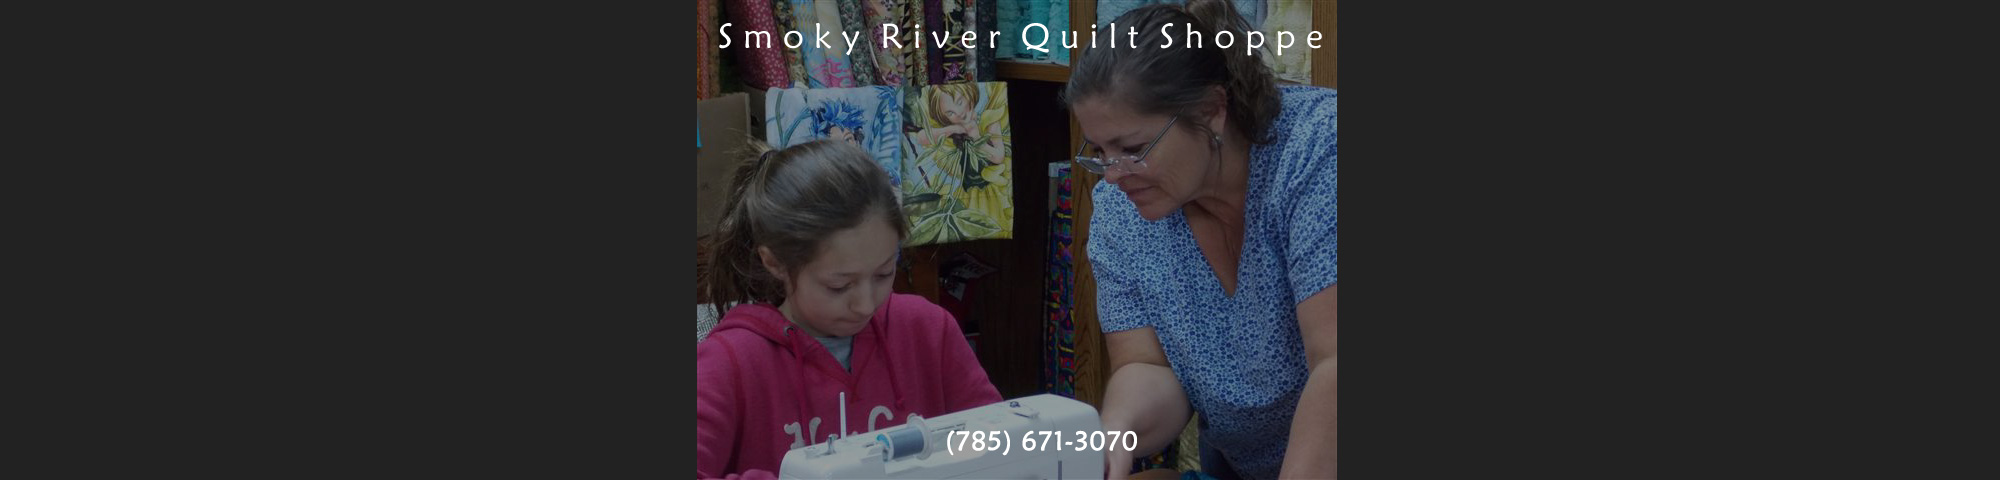 Smoky River Quilt Shoppe